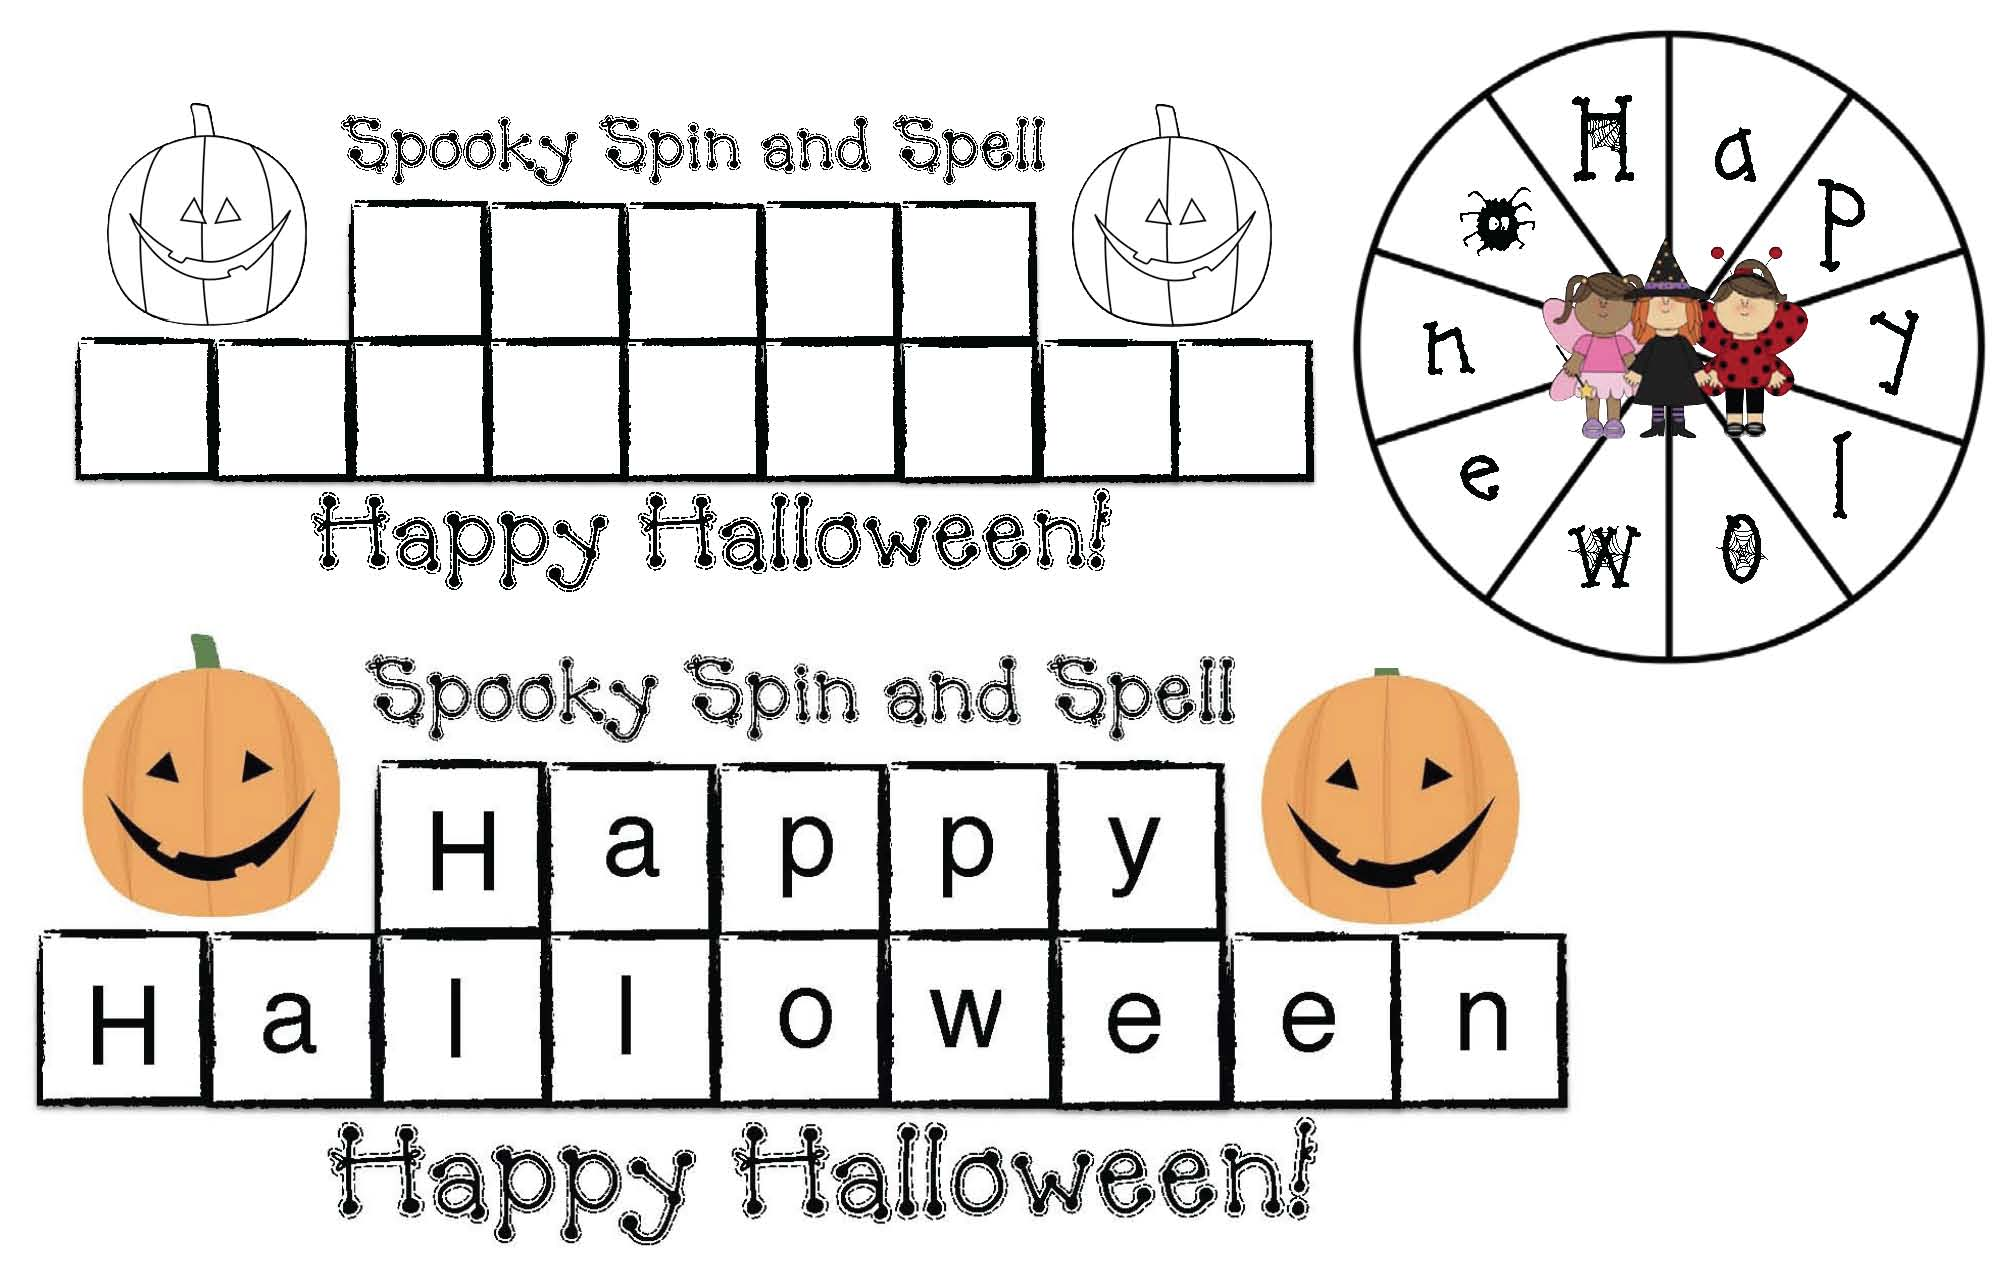 spooky spin and spell, how many words can you make with pumpkin, mustache word scramble, Halloween games, halloween activities, halloween coloring pages, halloween puzzles, halloween word games, halloween dice games, 100 chart games, 100 chart activities, hidden pictures in a 100 grid, pumpkin activities, pumpkin games, end punctuation activities, capitalization activities, spelling games, spelling activities, halloween writing prompts,